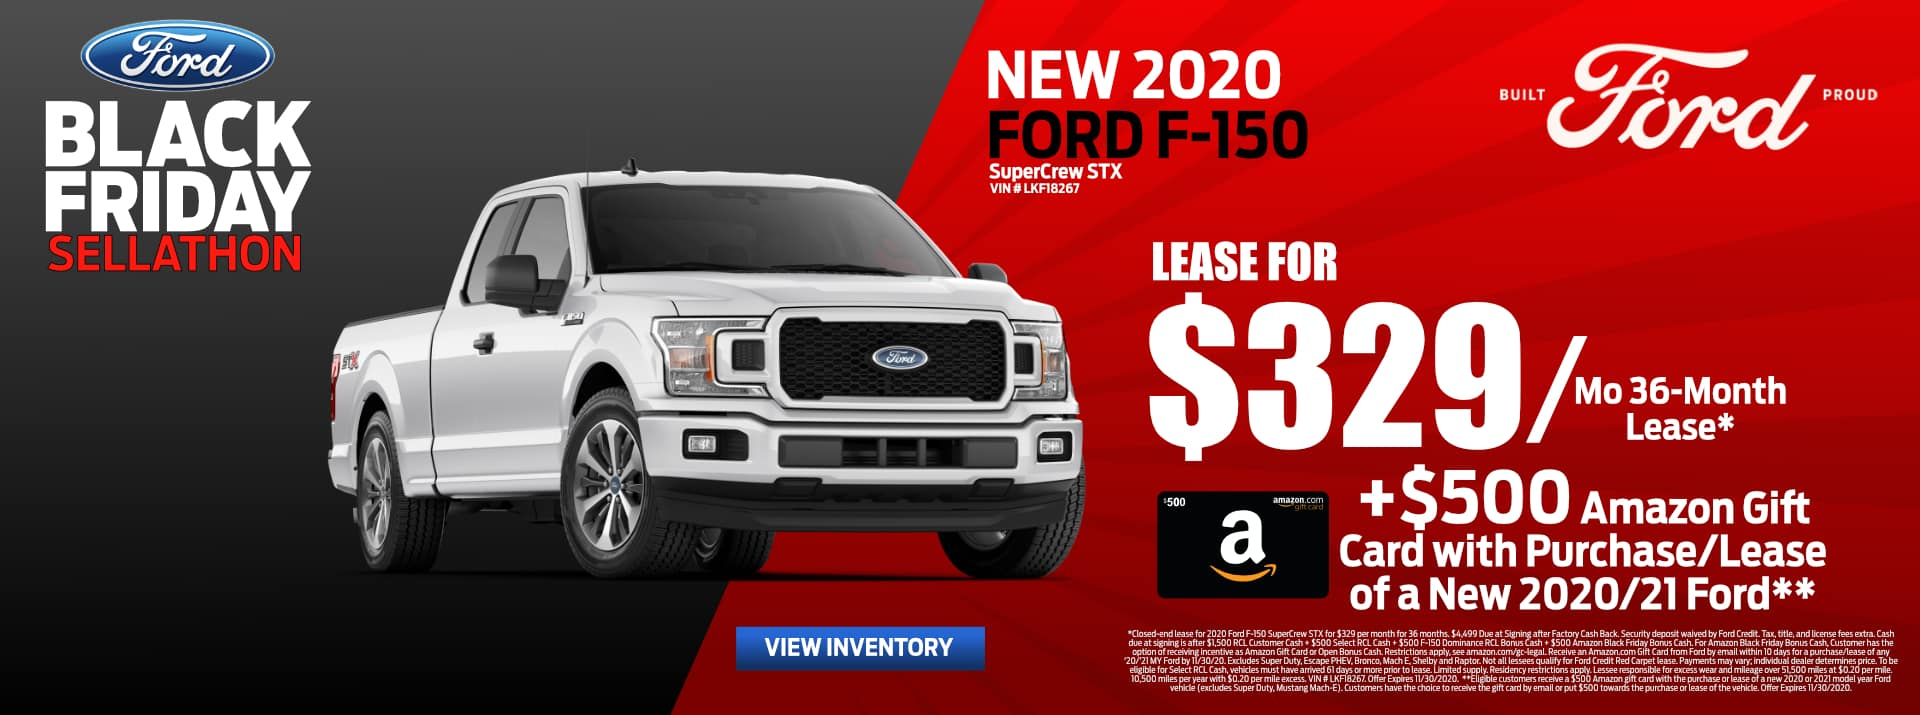 RRR_Black Friday_November-2020_Ford_F-150 Lease PSF